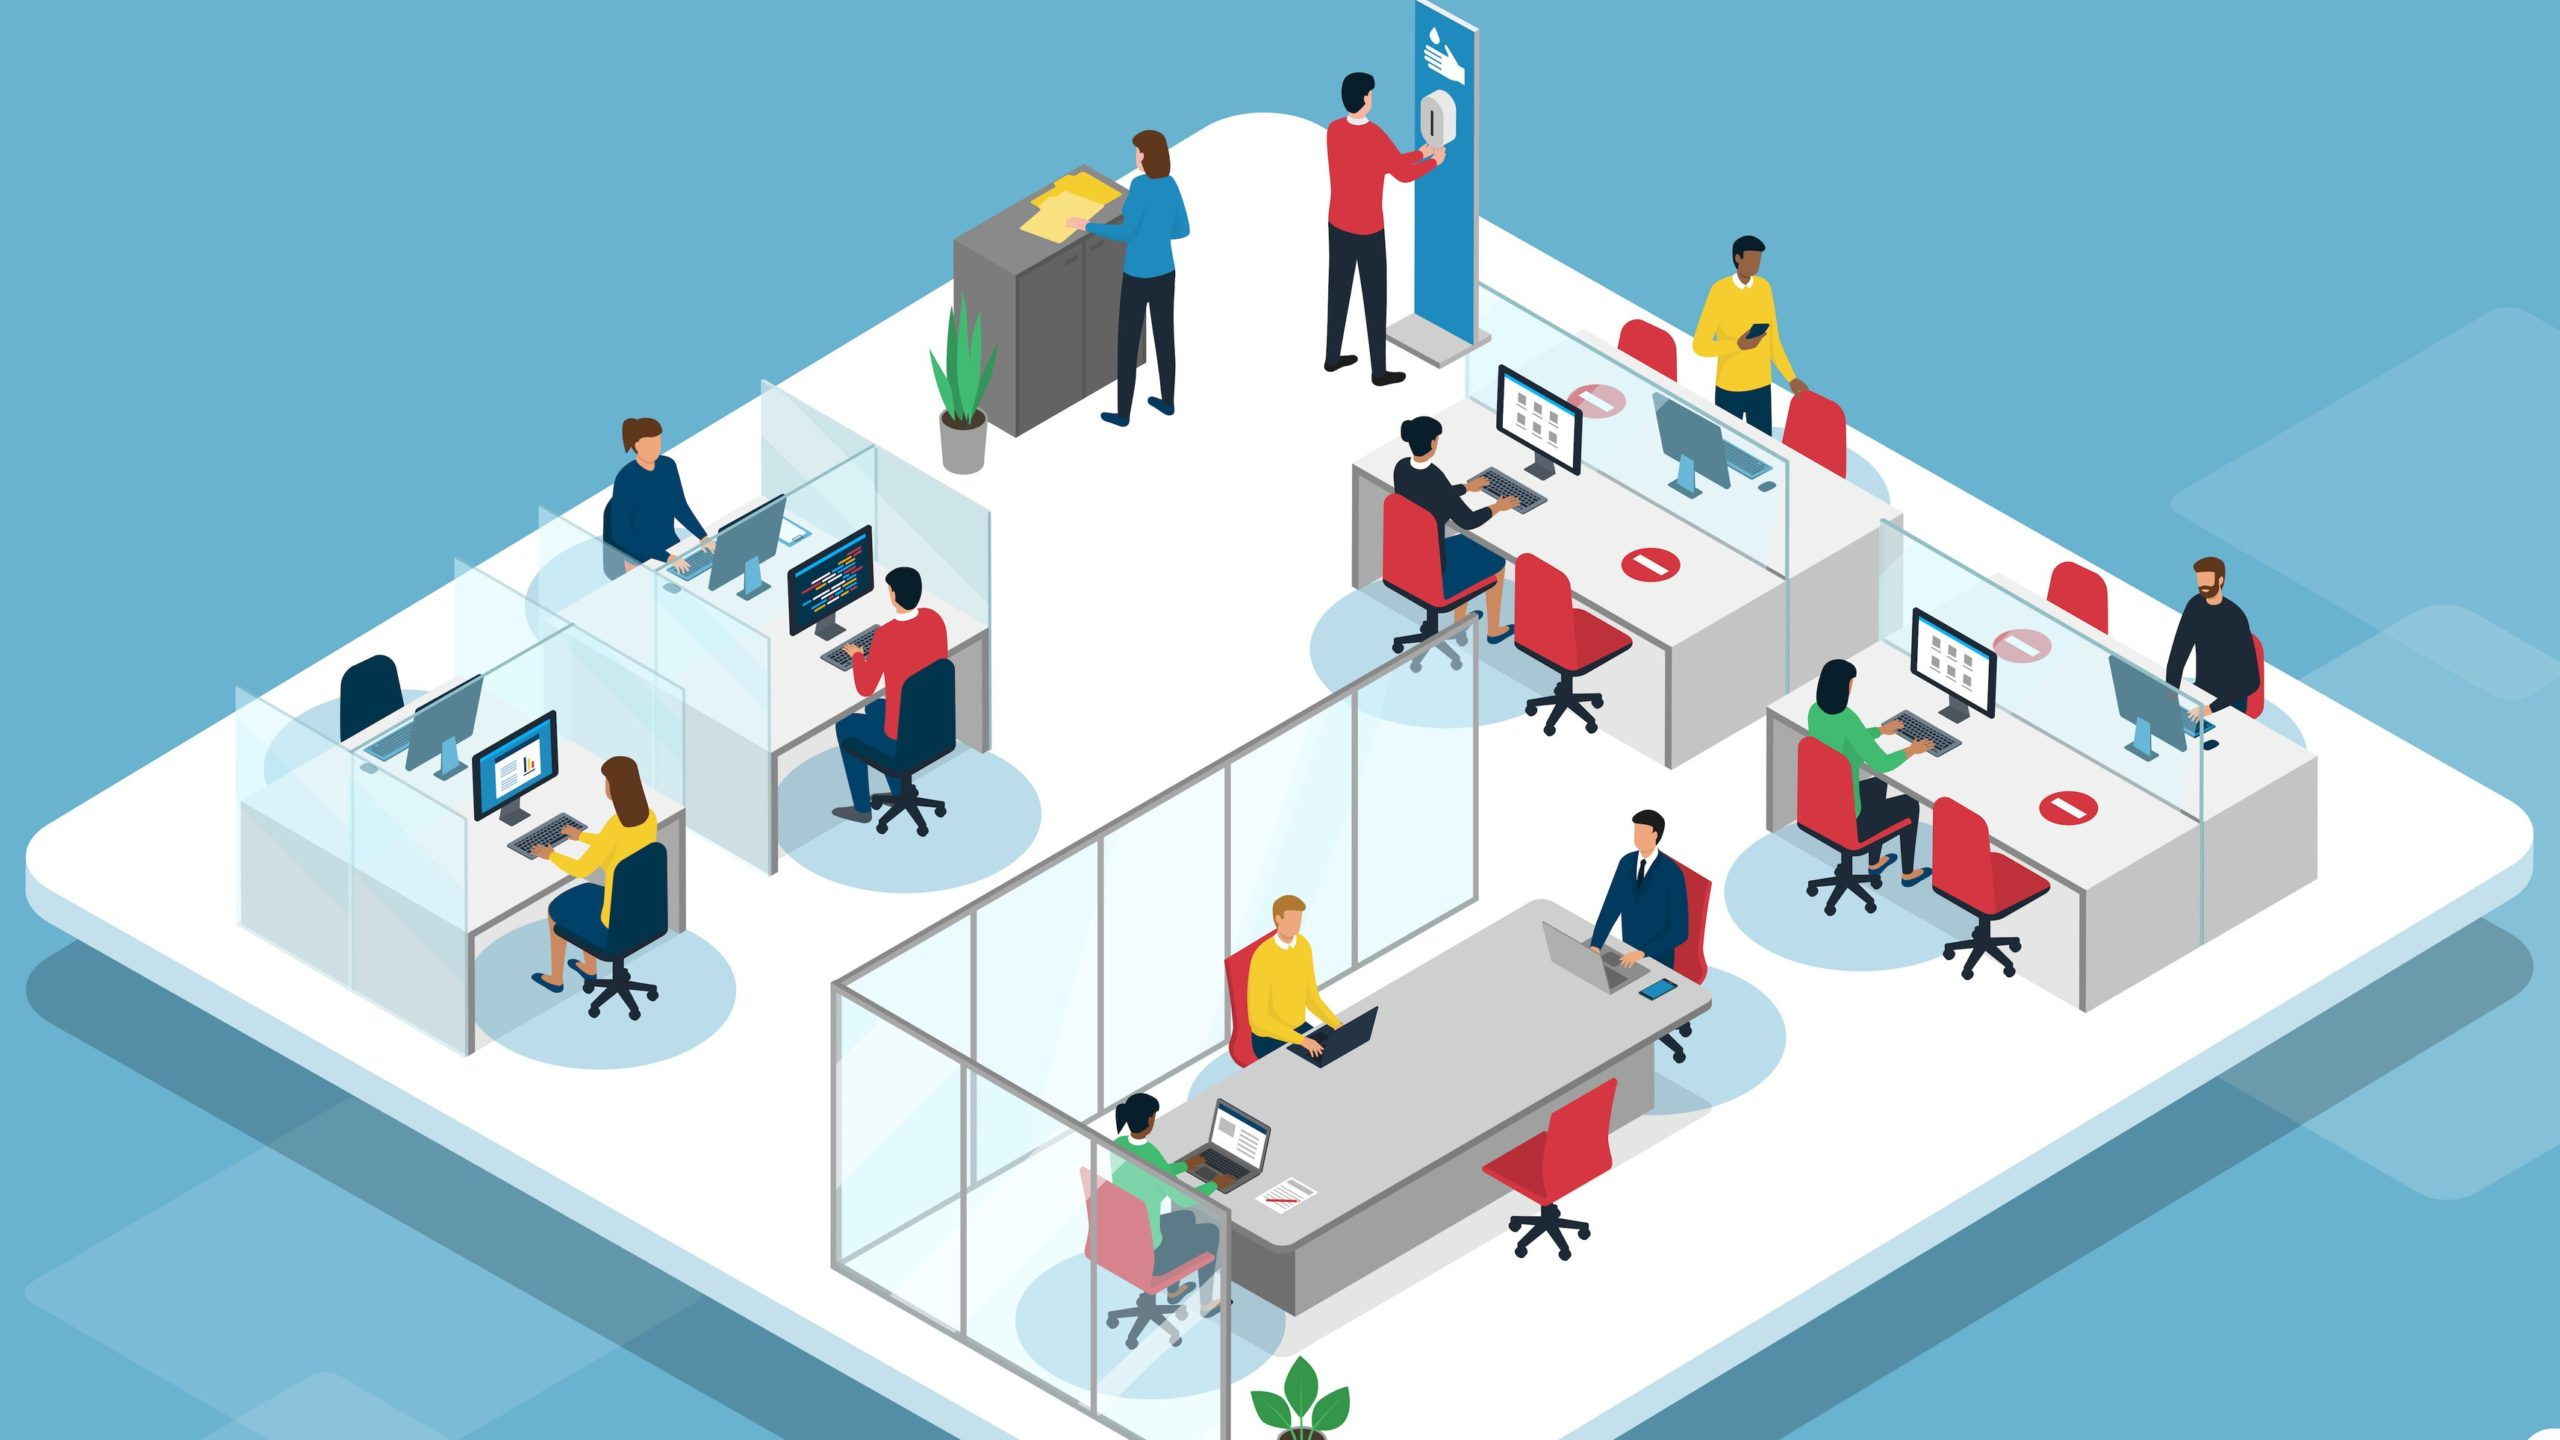 What are the benefits of agile working? – a small business guide